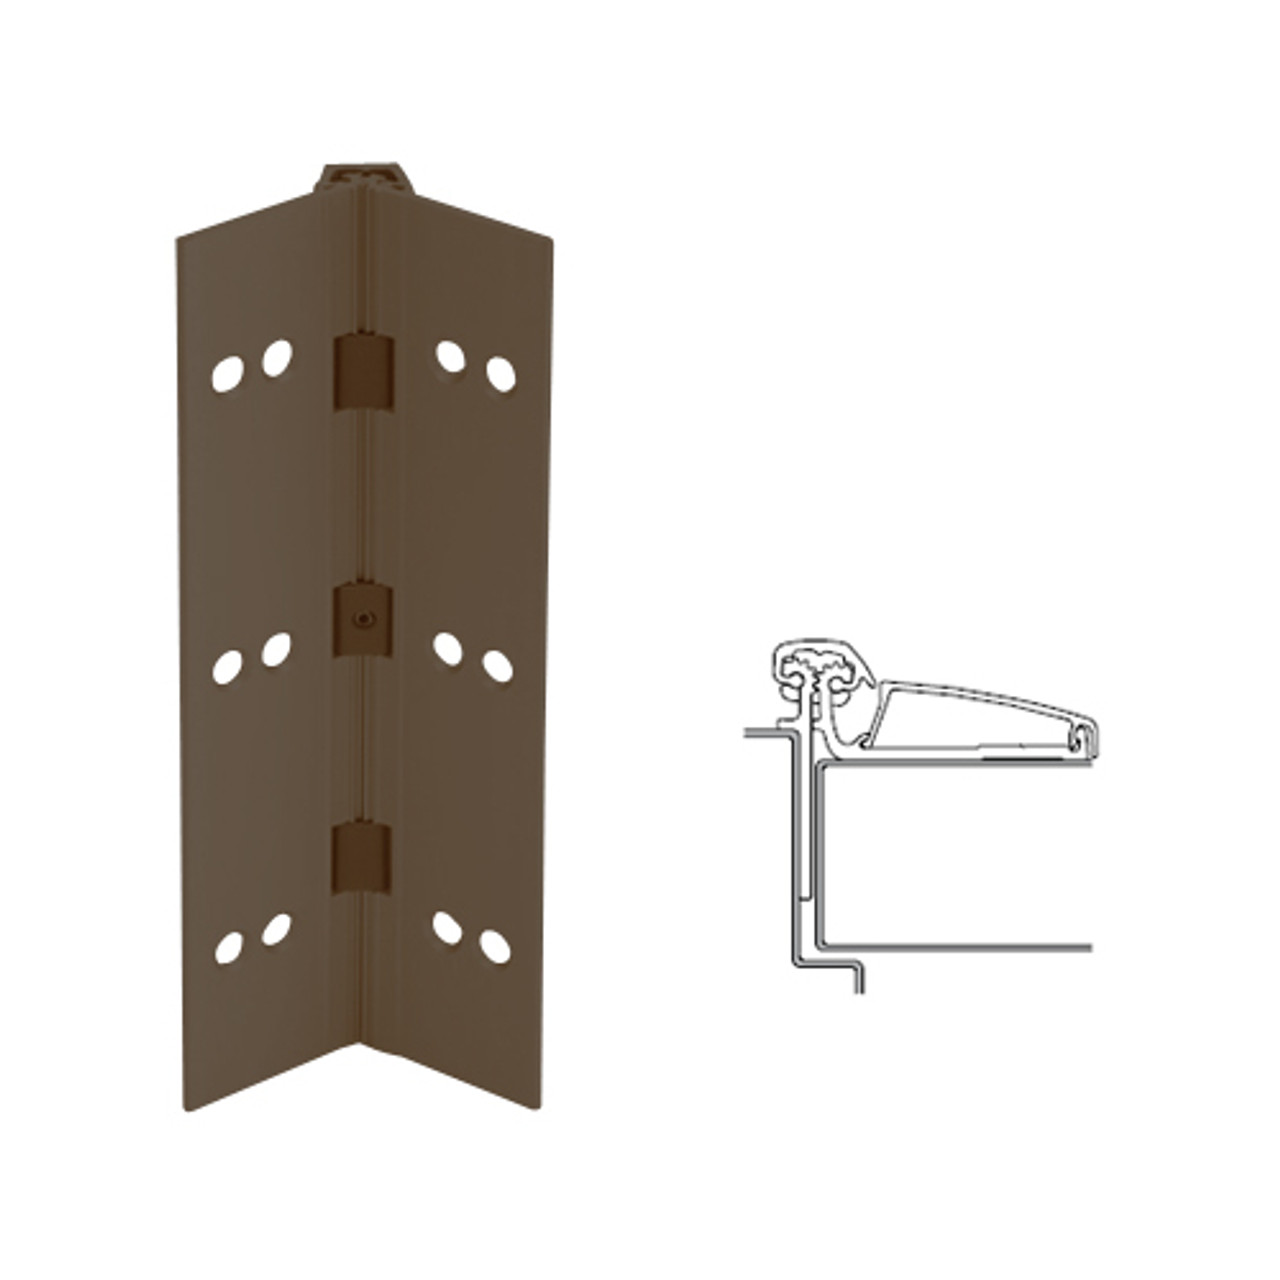 045XY-313AN-85-SECWDWD IVES Adjustable Half Surface Continuous Geared Hinges with Security Screws - Hex Pin Drive in Dark Bronze Anodized